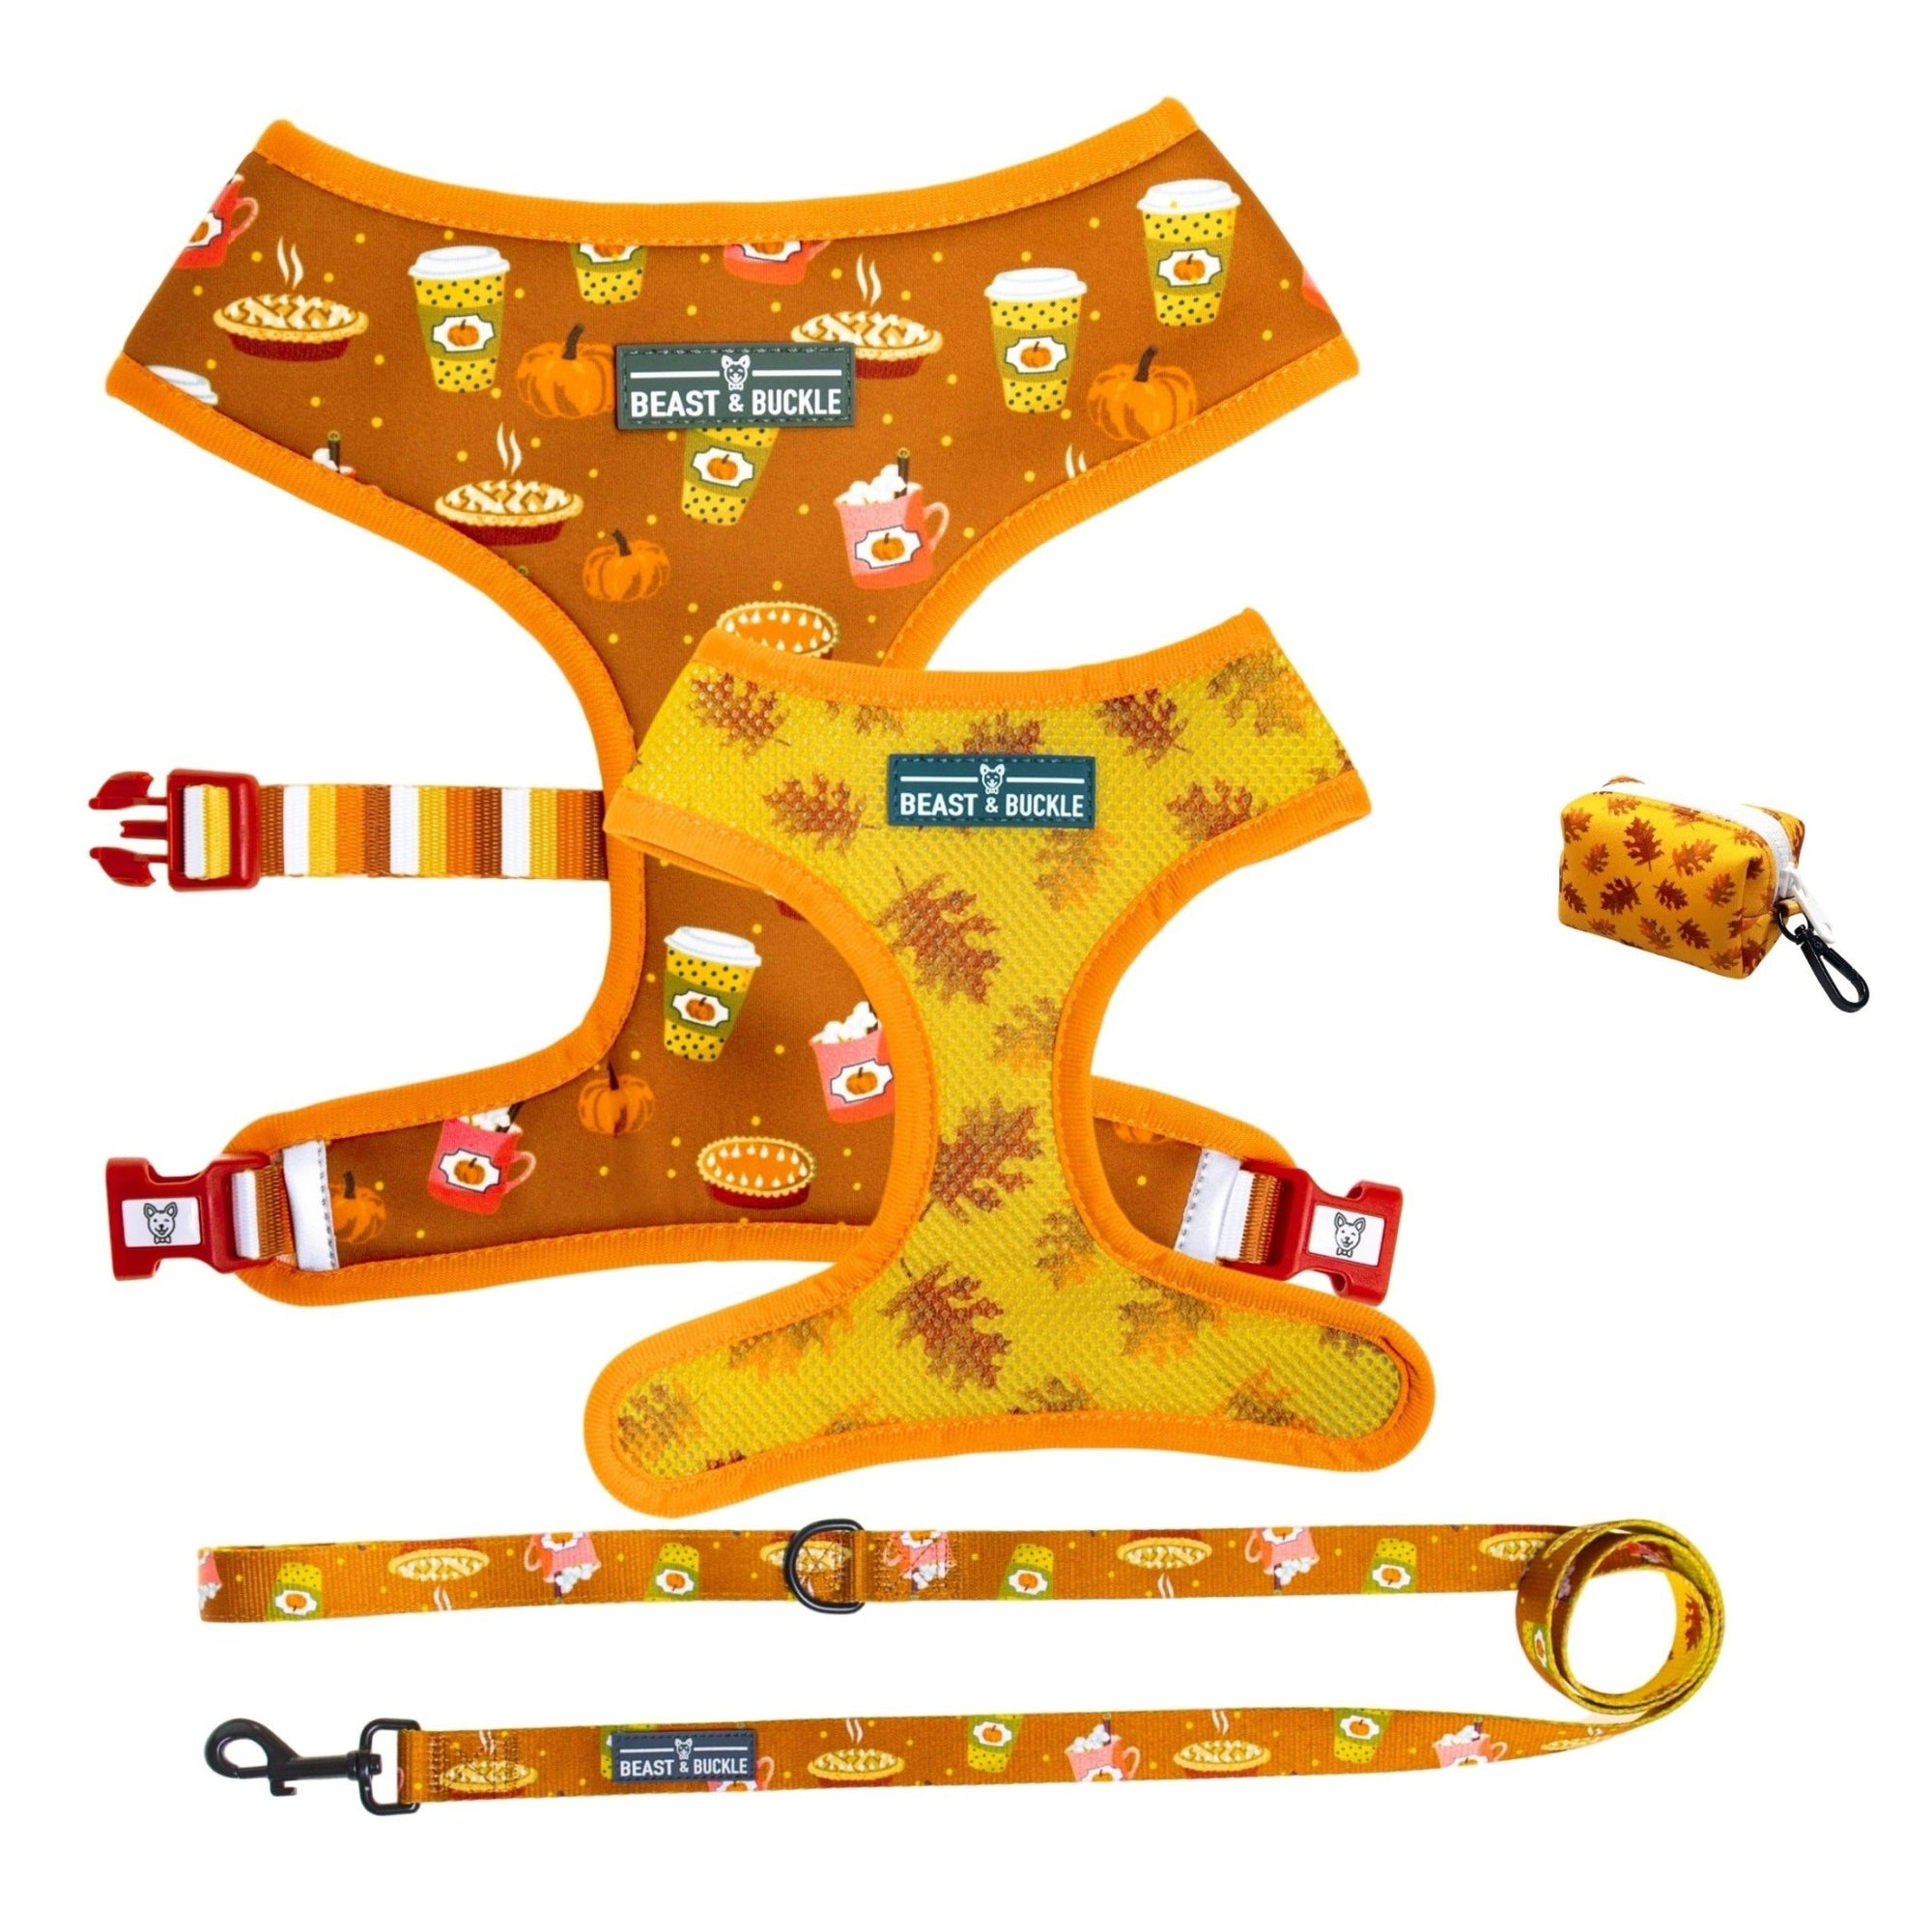 Pumpkin Spice Walking Bundle - Beast & Buckle